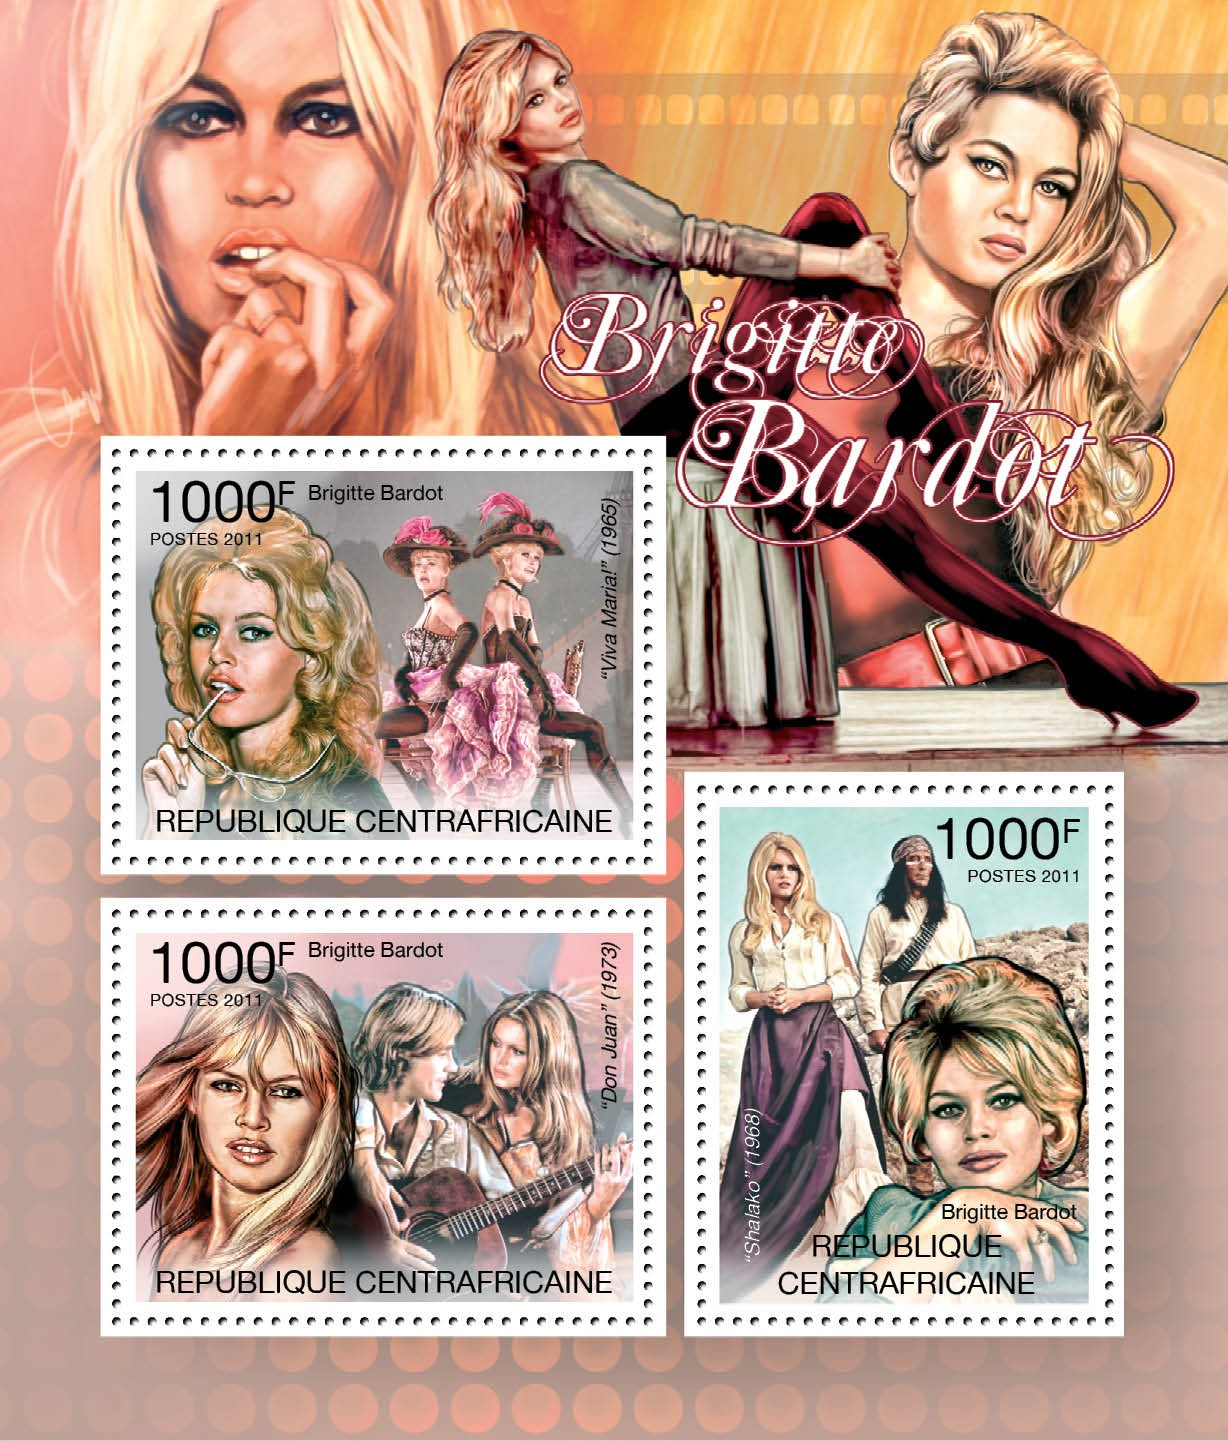 Brigitte Bardot. - Issue of Central African republic postage stamps